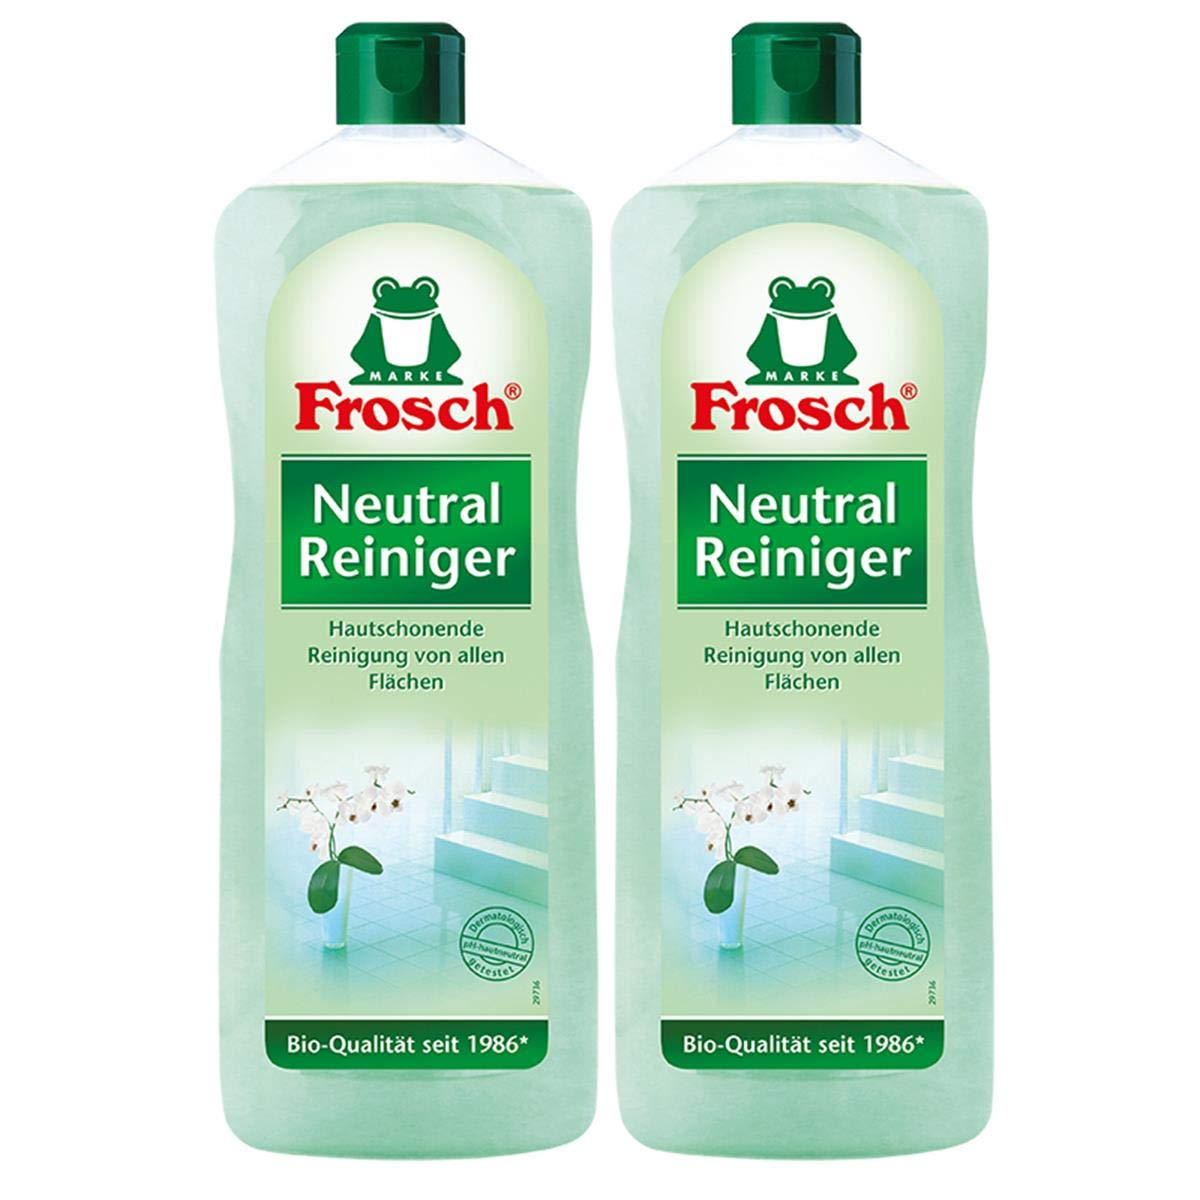 2 x litro de Reiniger1 neutral de rana: Amazon.es: Hogar